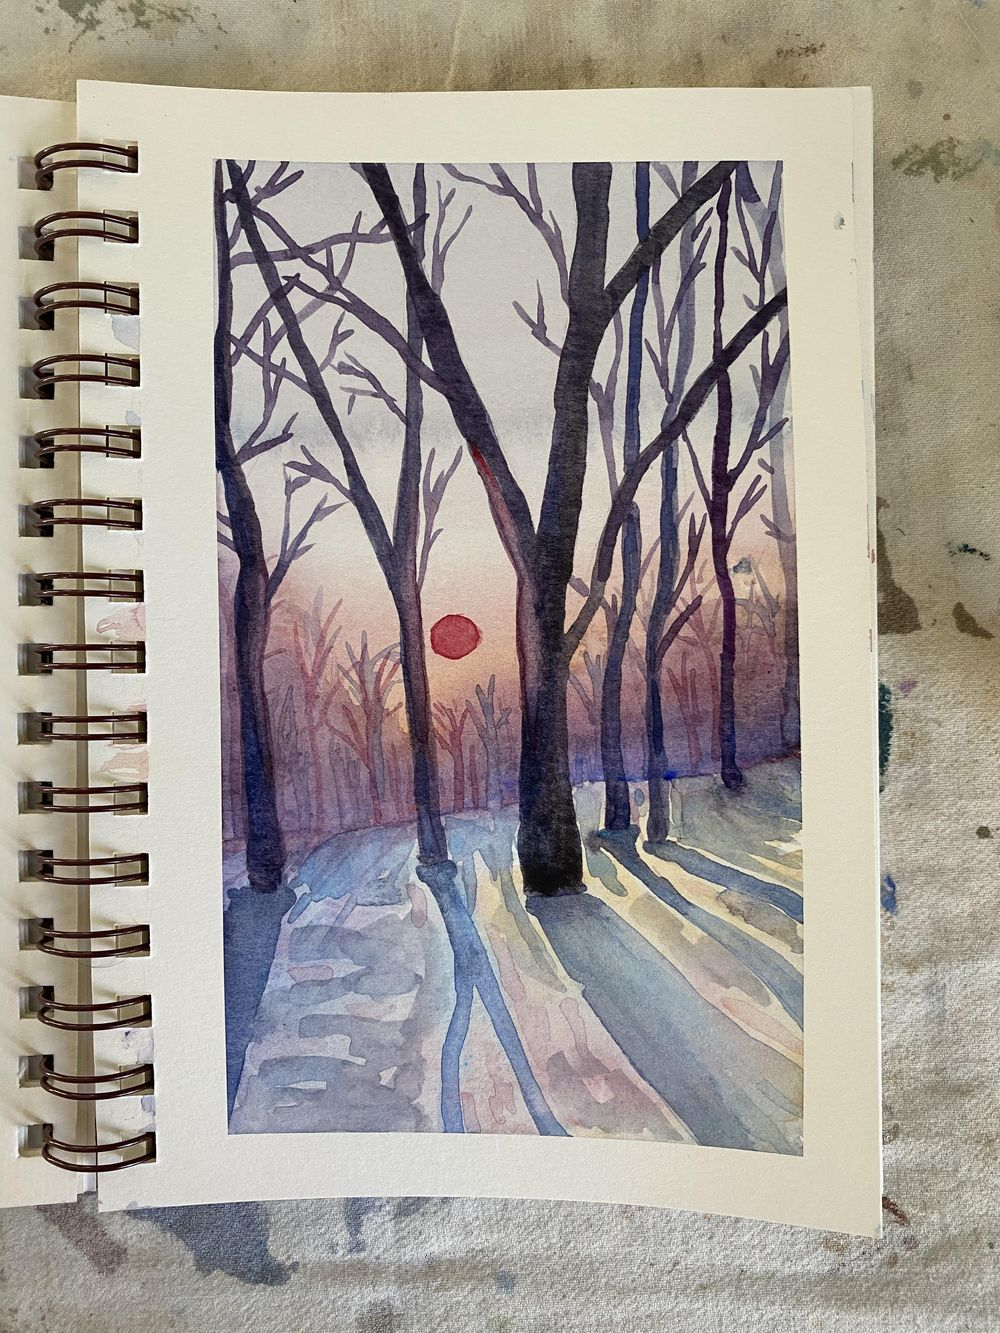 Winter forest landscape - image 2 - student project